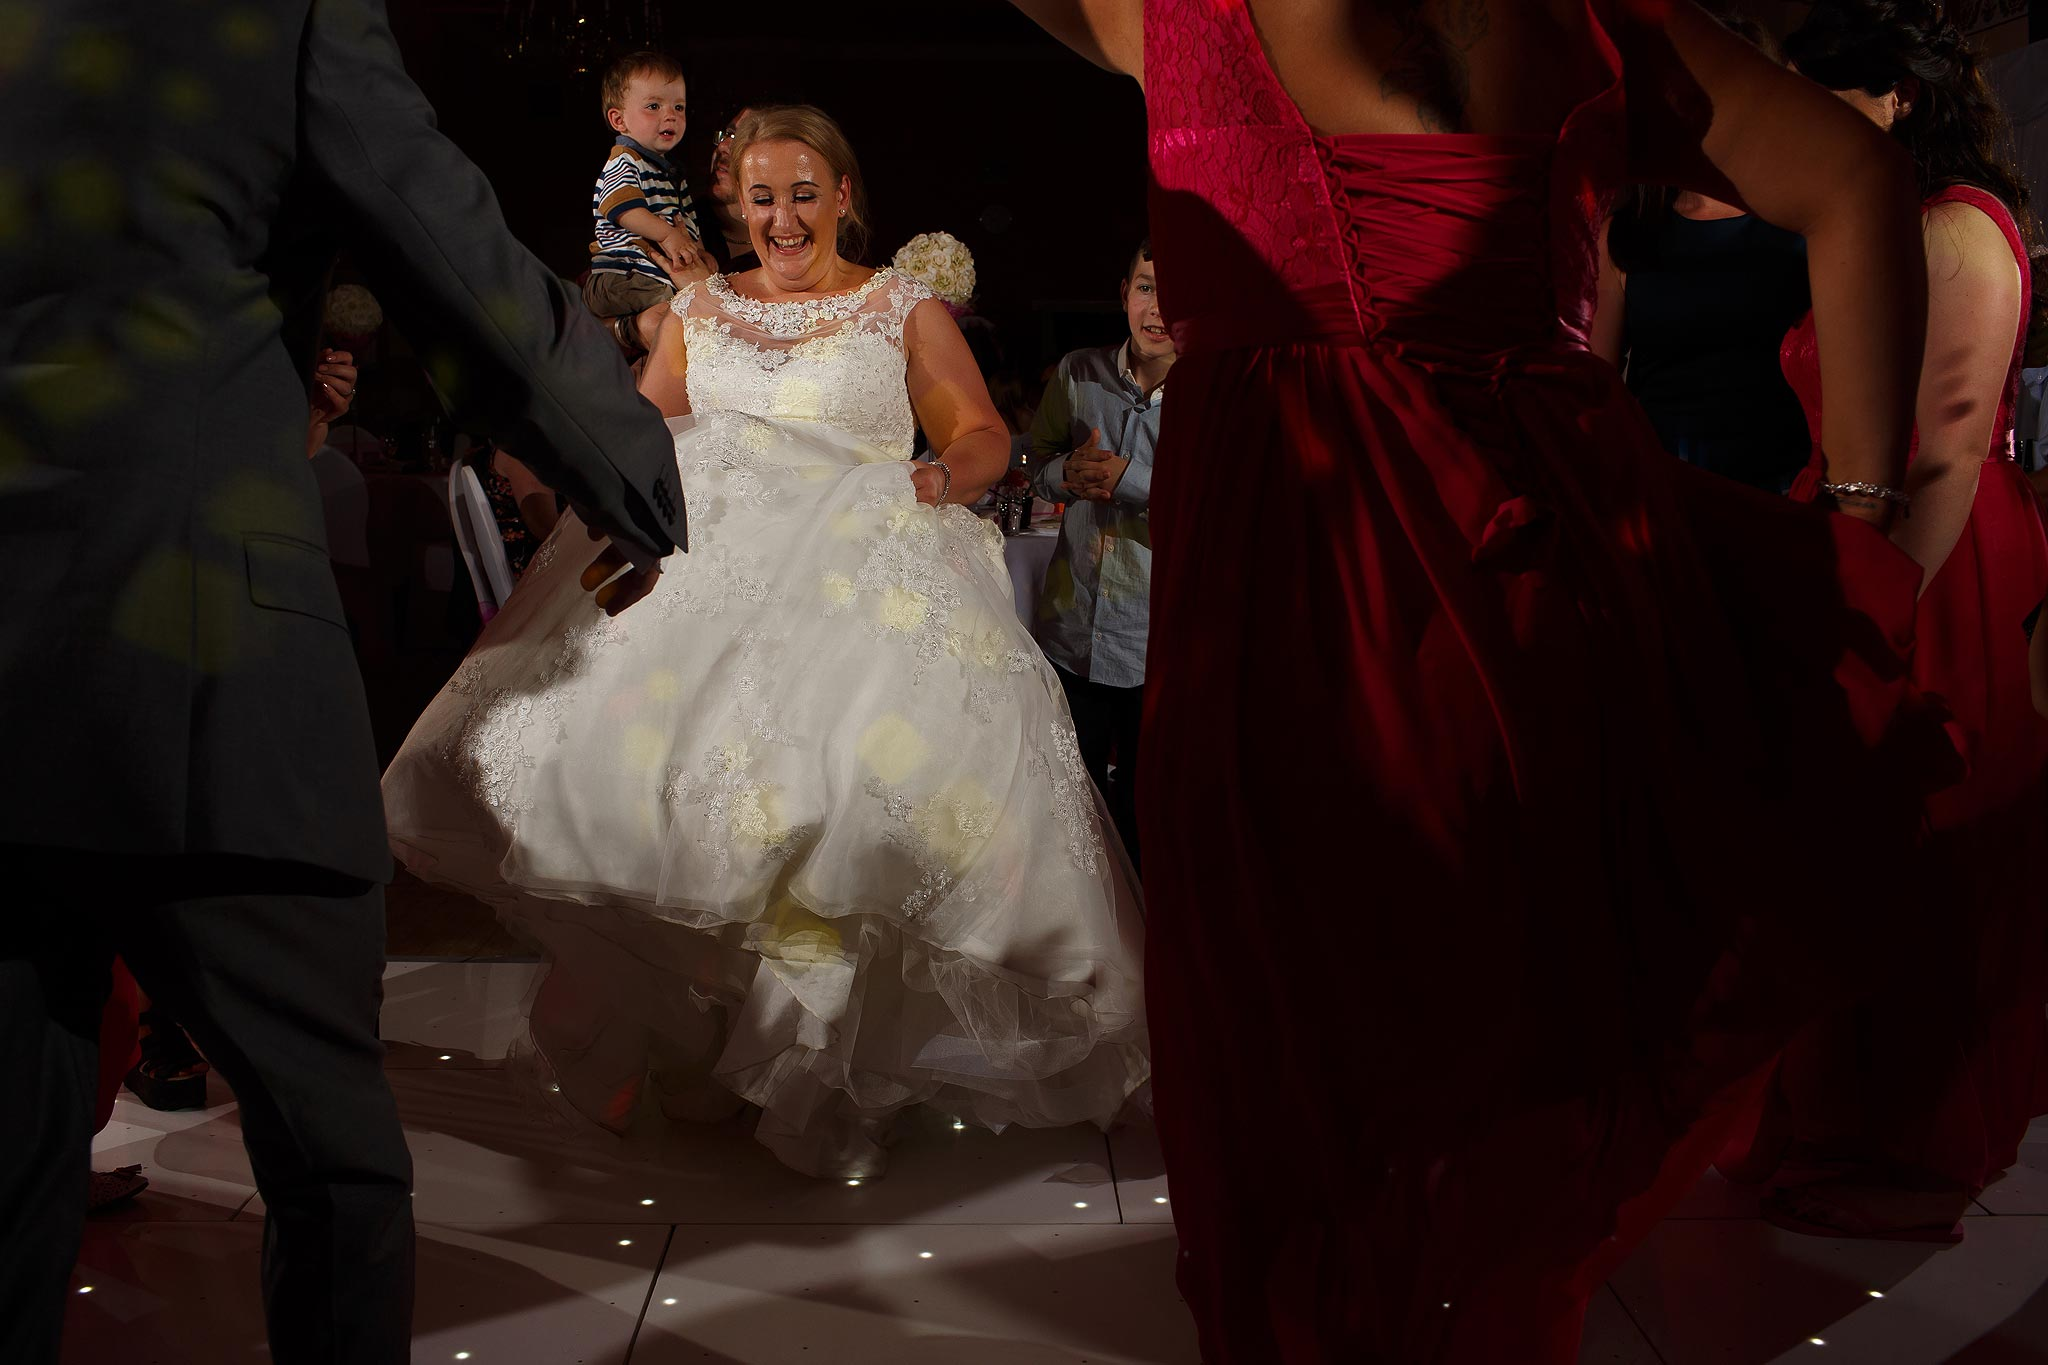 Bride dancing on their wedding day at Swinton Masonic Hall